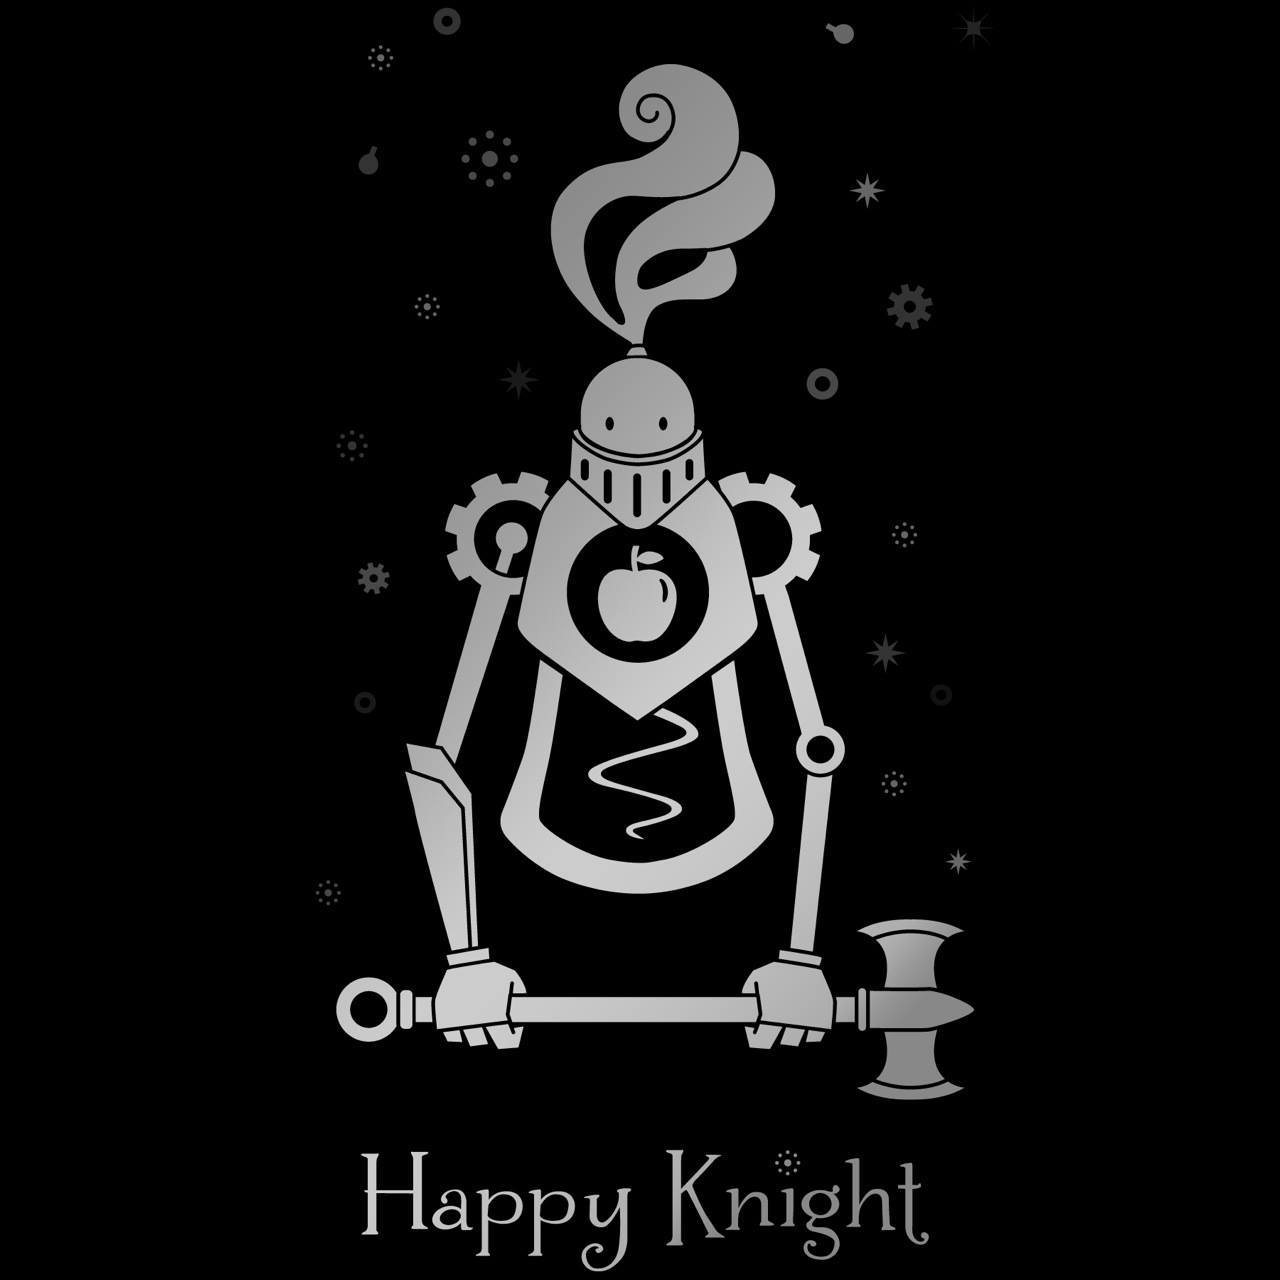 HappyKnight